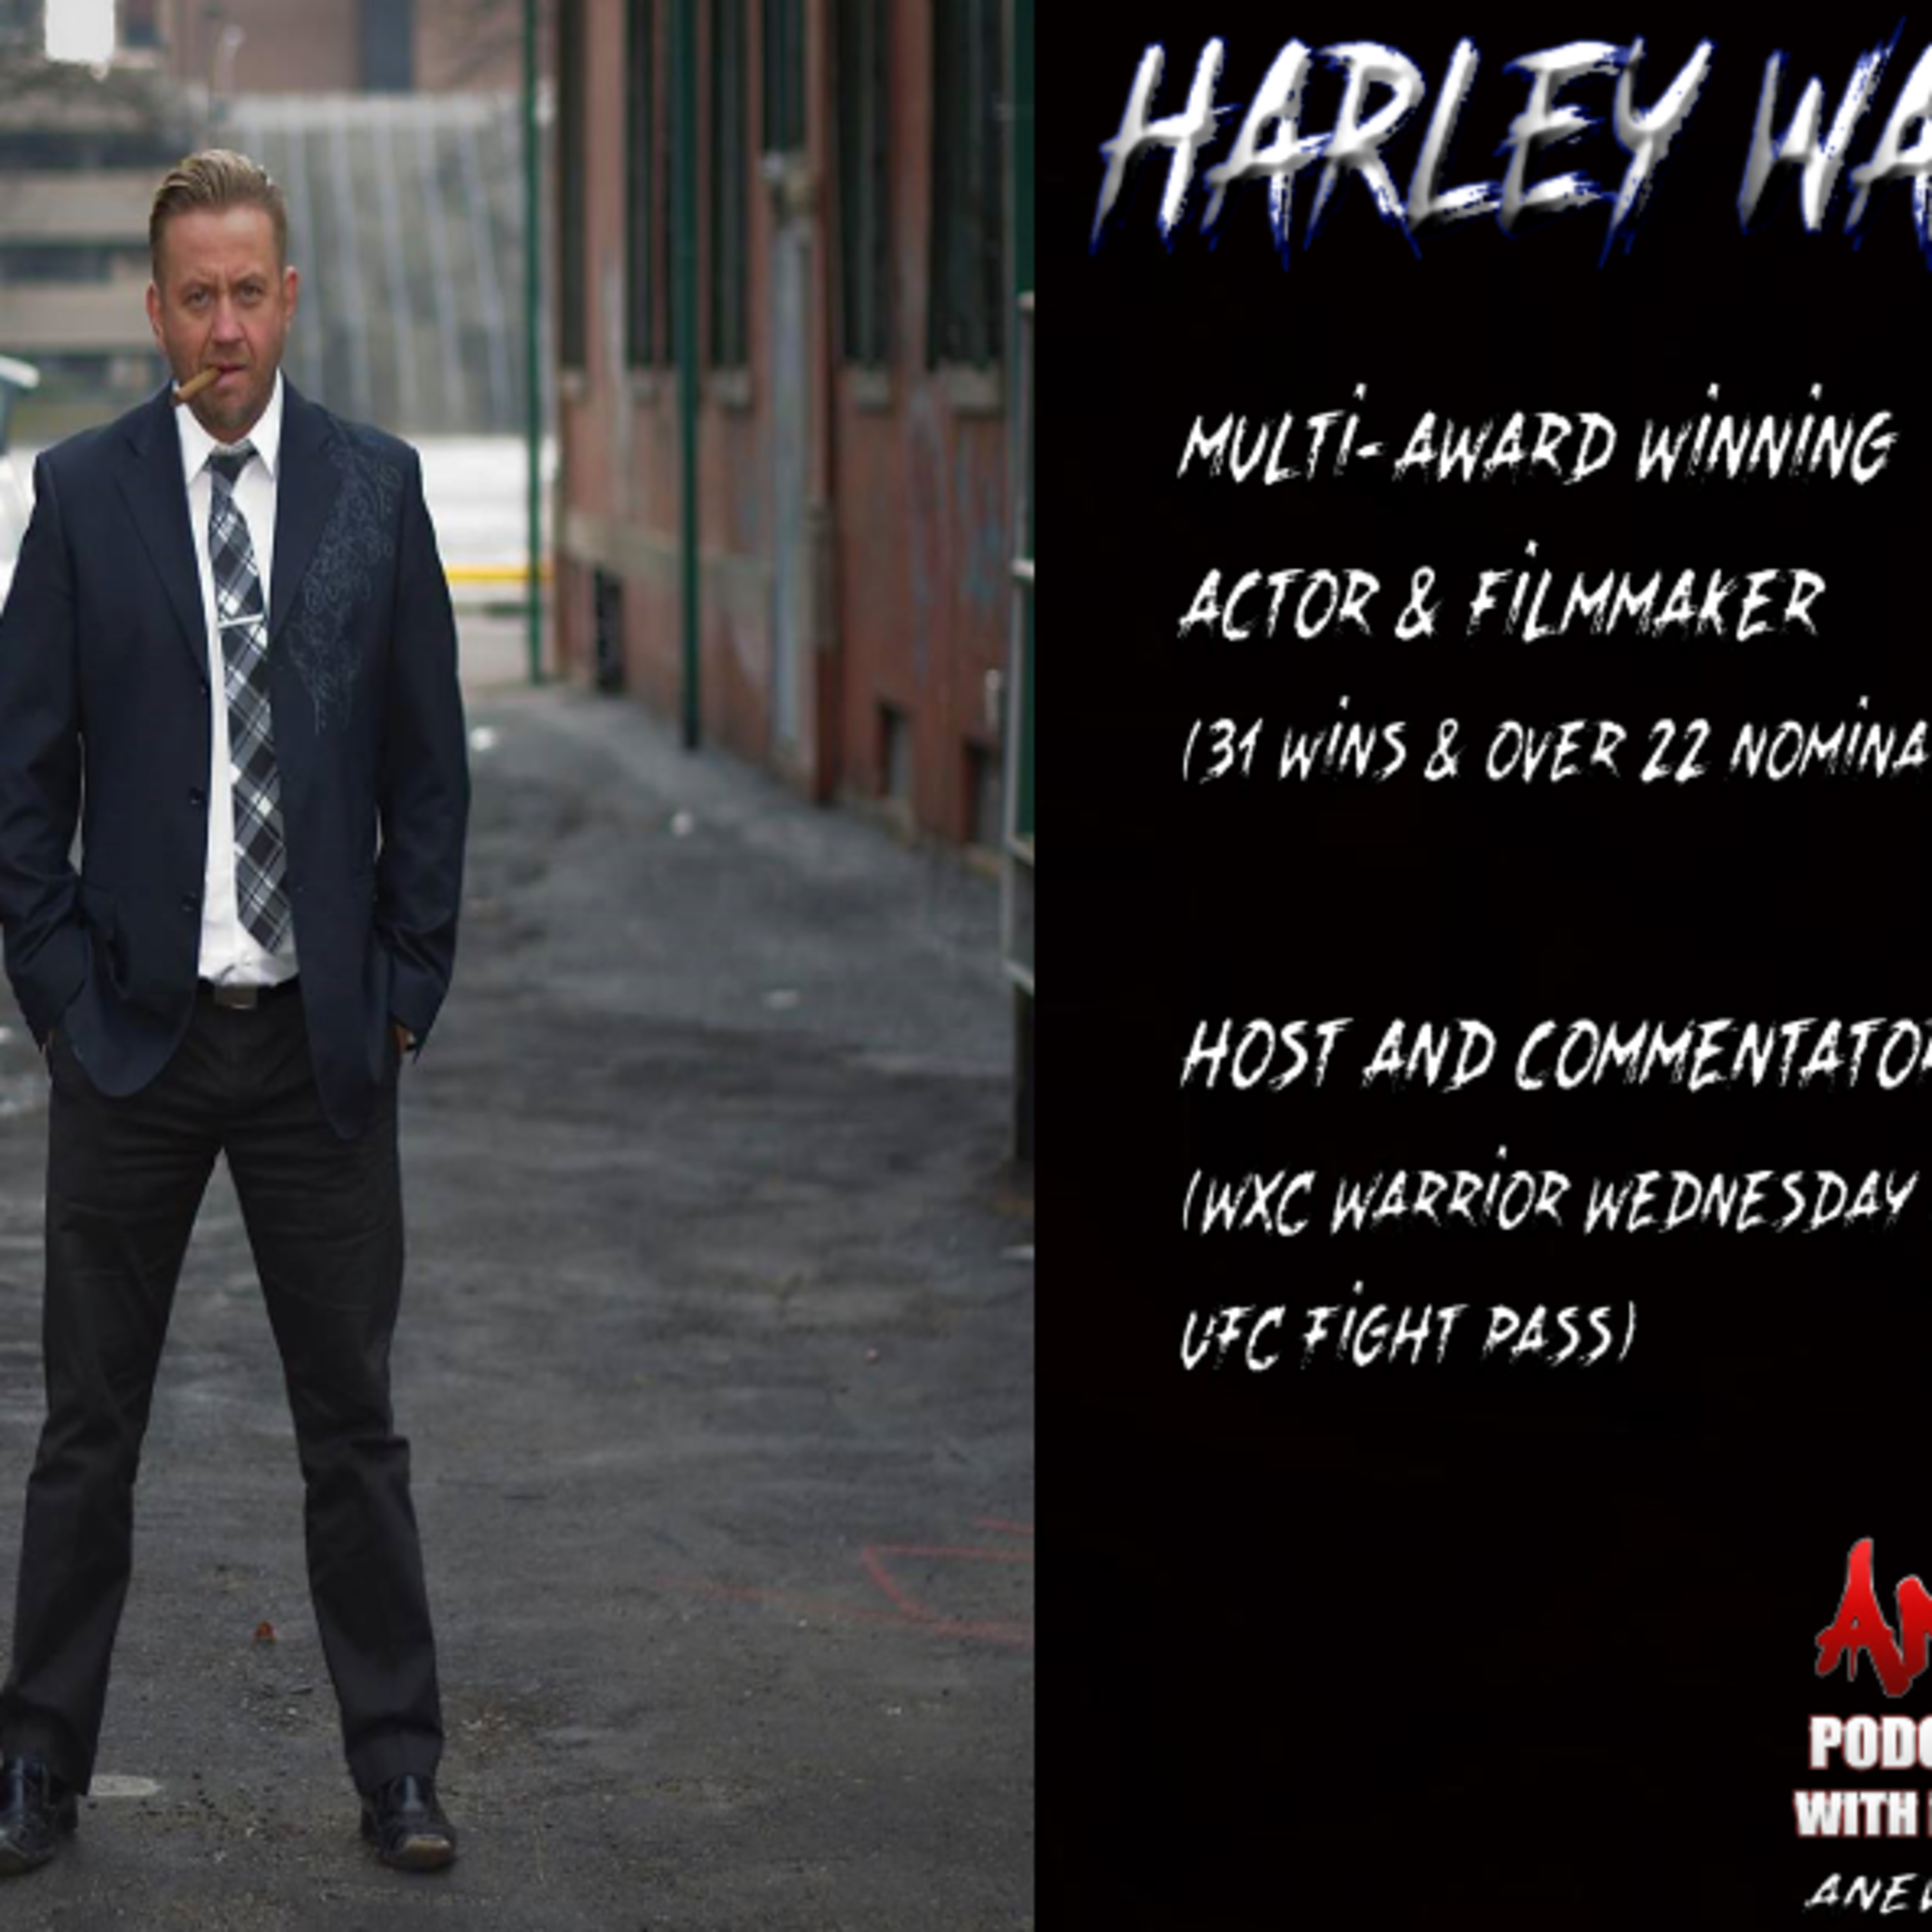 Exclusive Interview with Harley Wallen